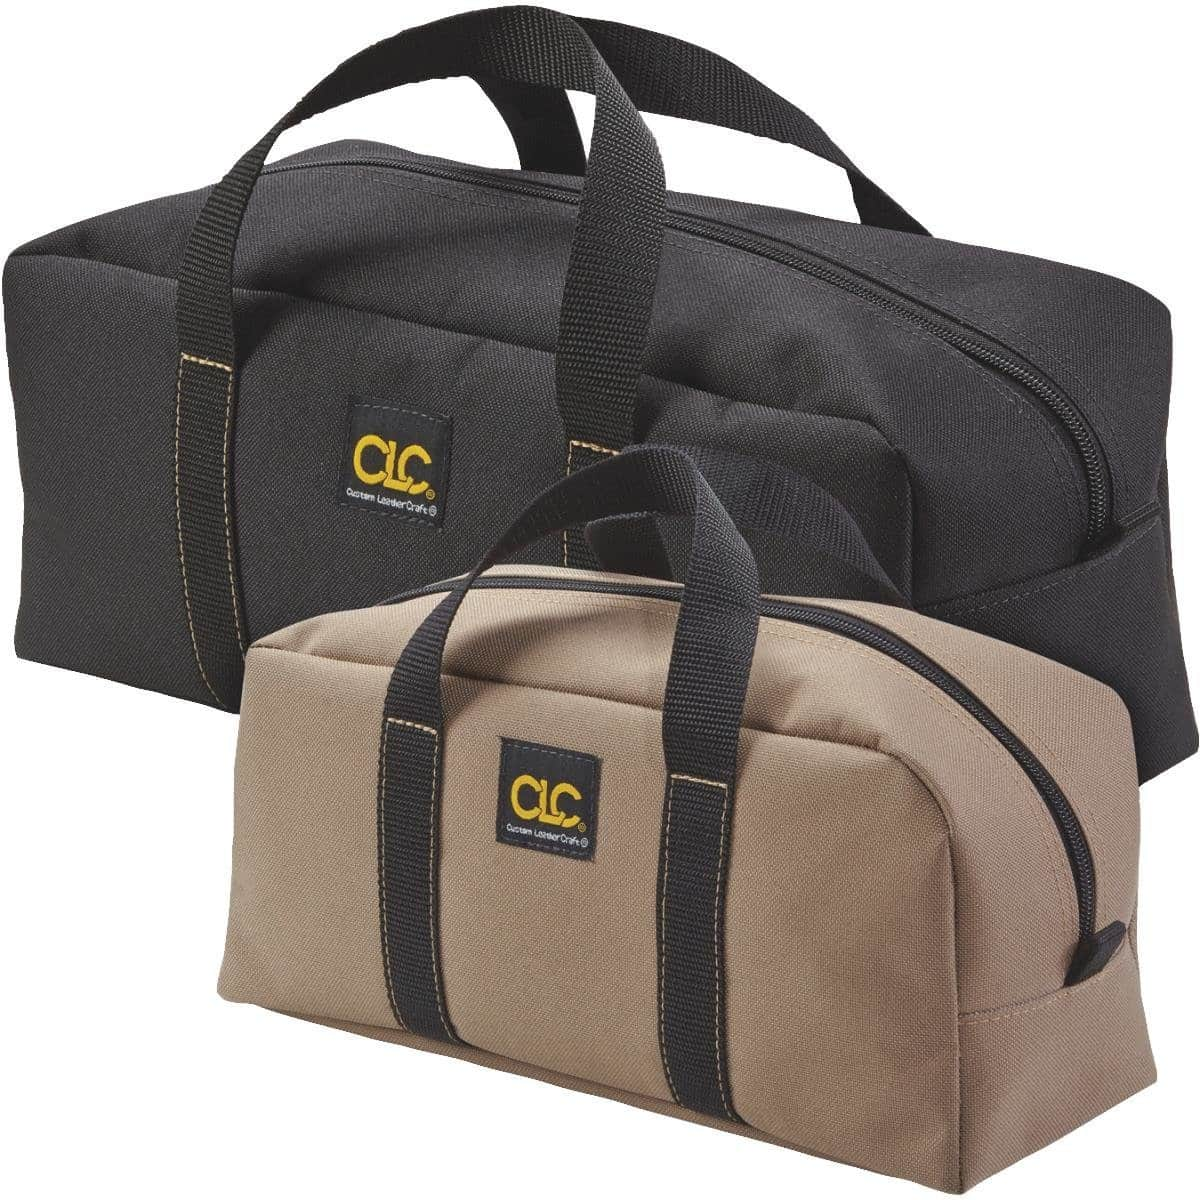 CLC 1107 2 Pack Medium and Large Utility Tote Bag Combo $8.99